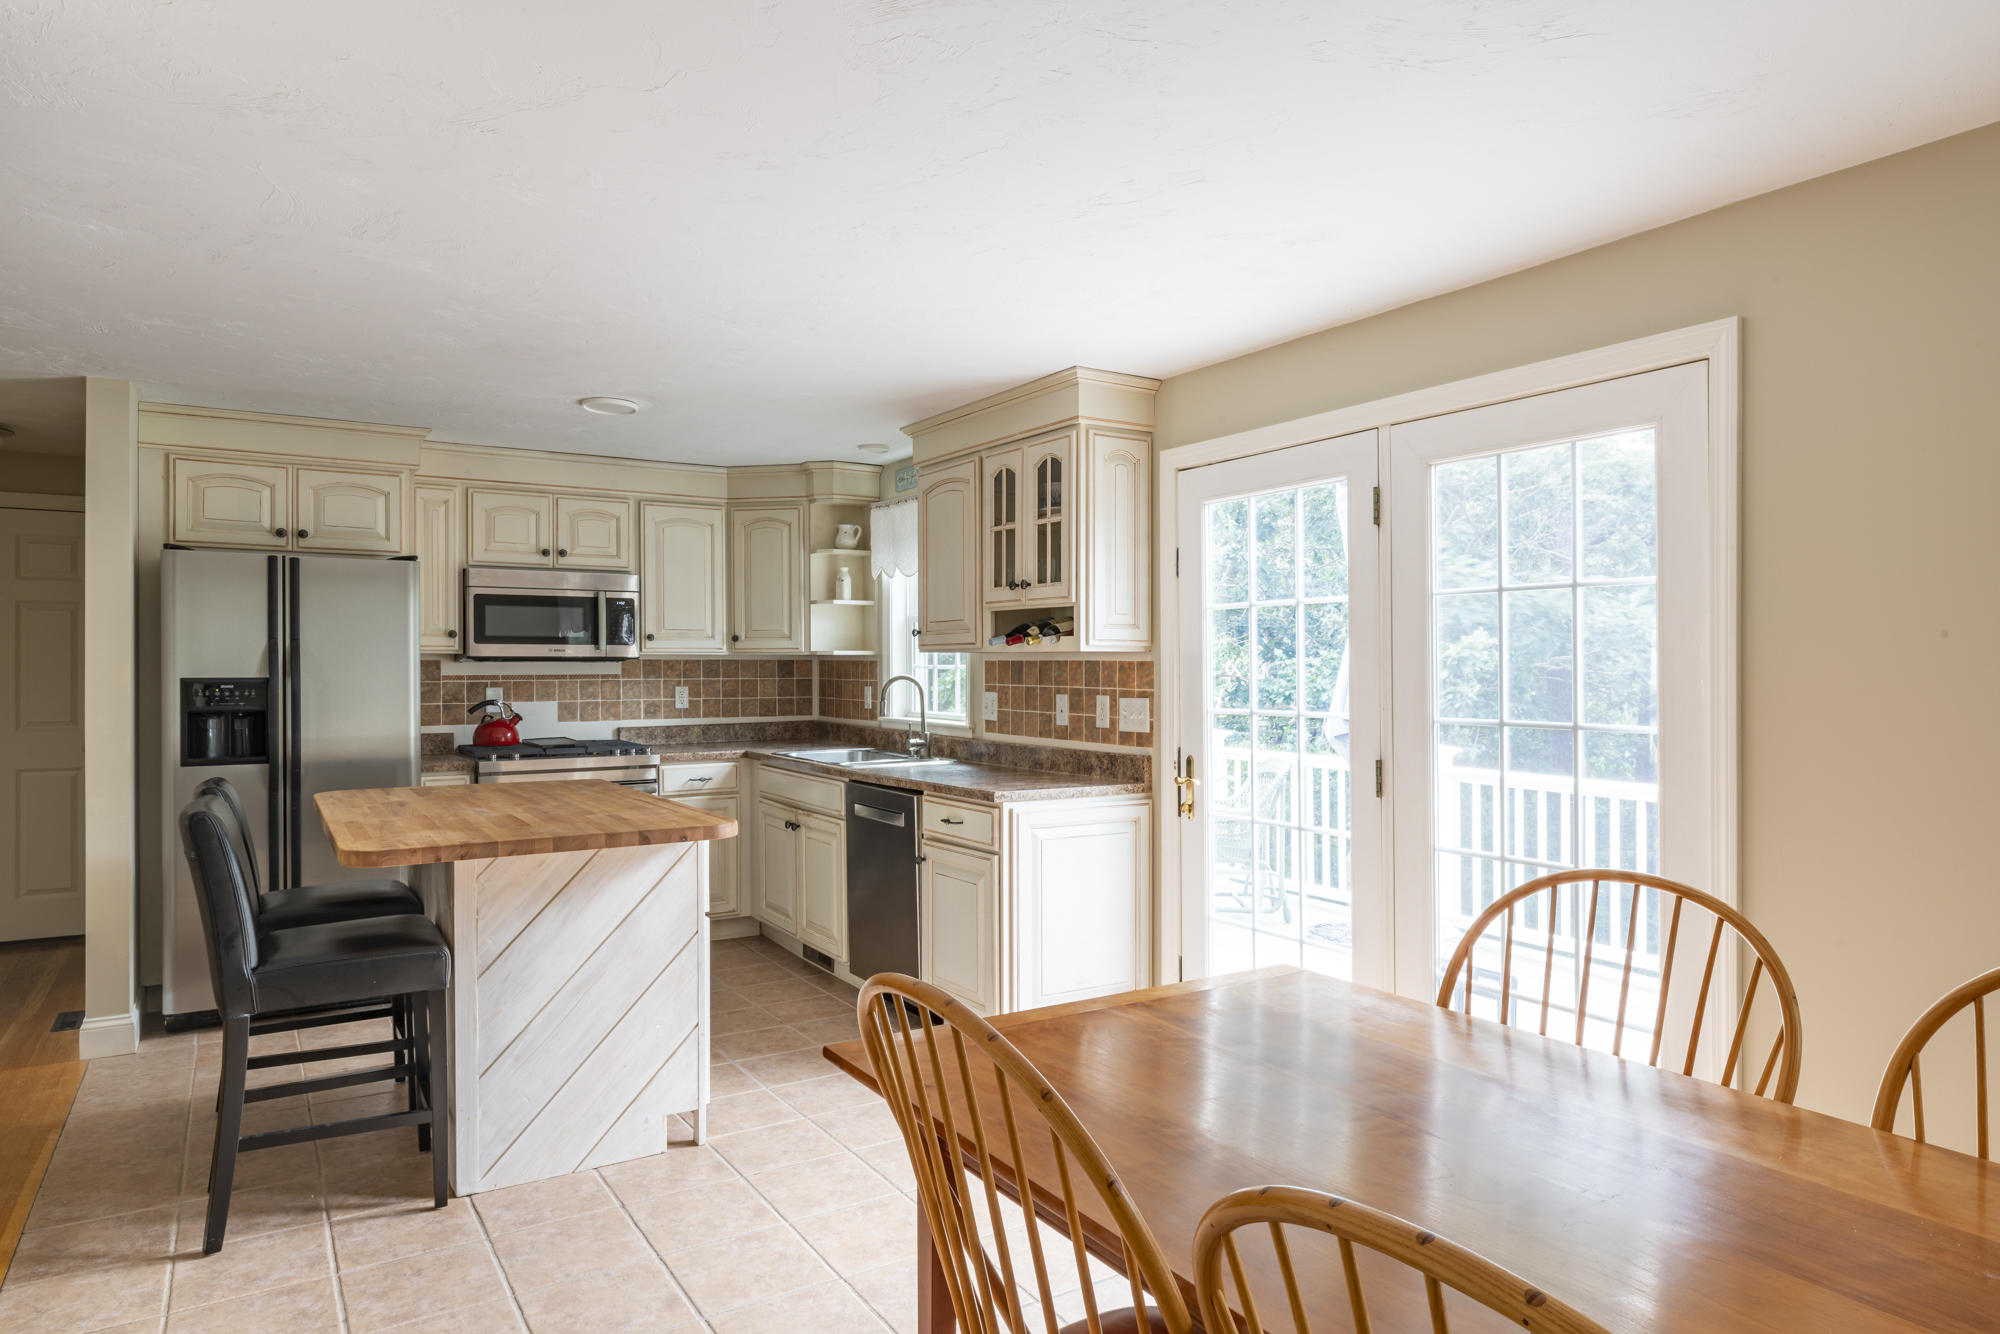 100 Old Mail Road, North Chatham, MA  02650 - slide 9